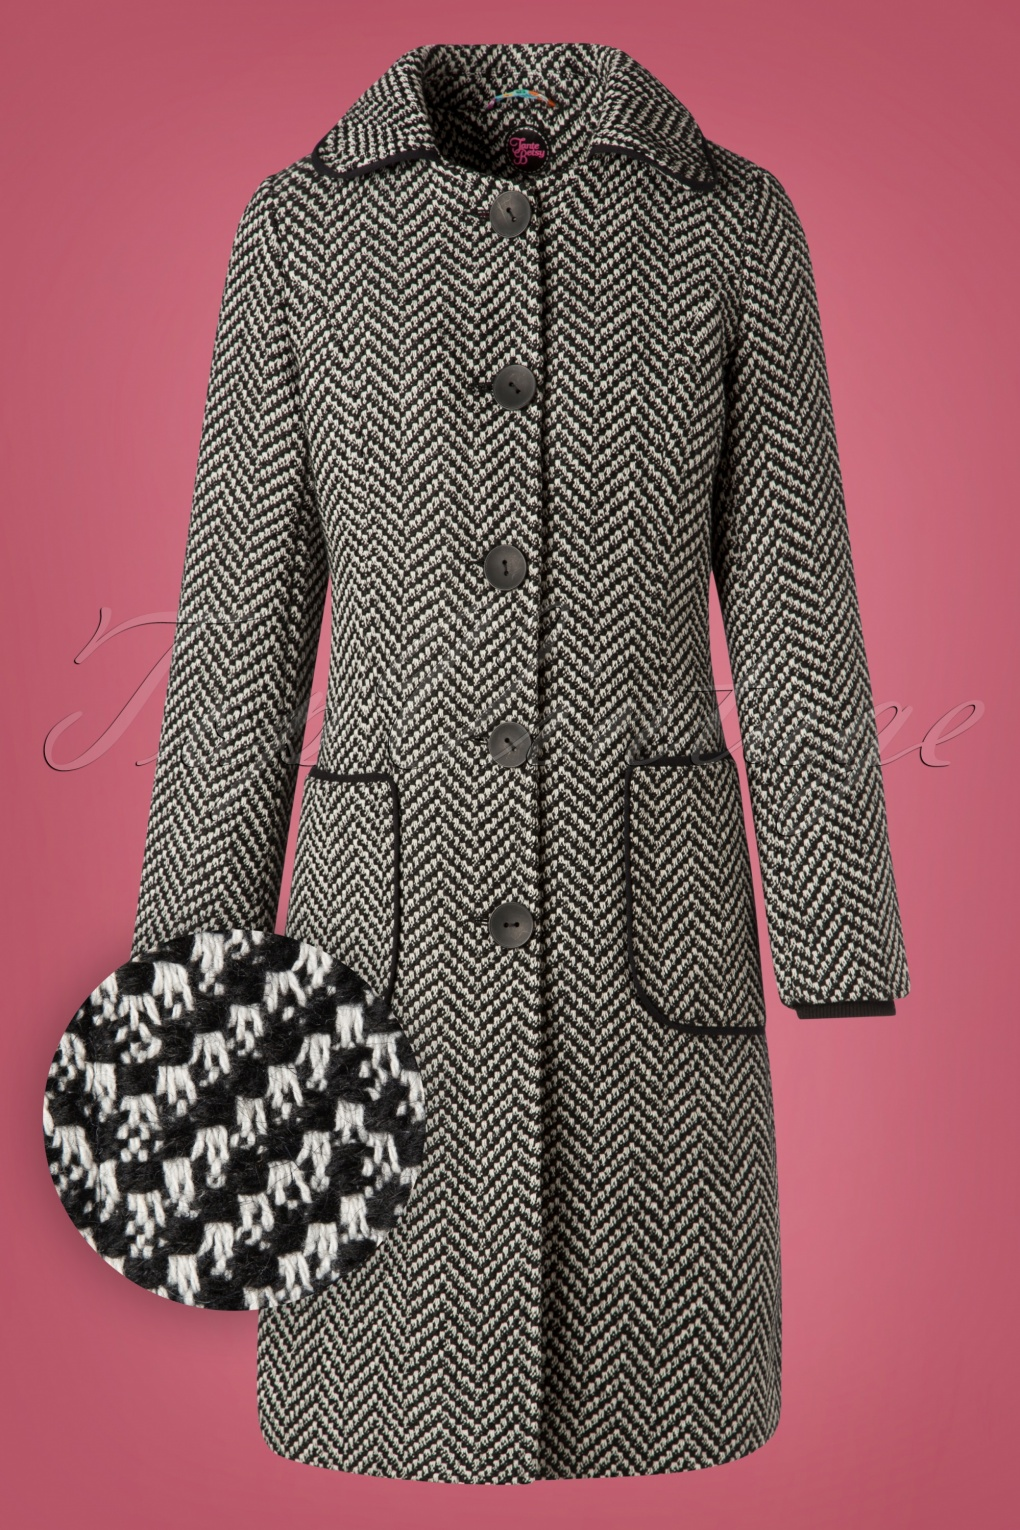 Vintage Coats & Jackets | Retro Coats and Jackets 60s Tilly Herringbone Coat in Black and White £149.01 AT vintagedancer.com